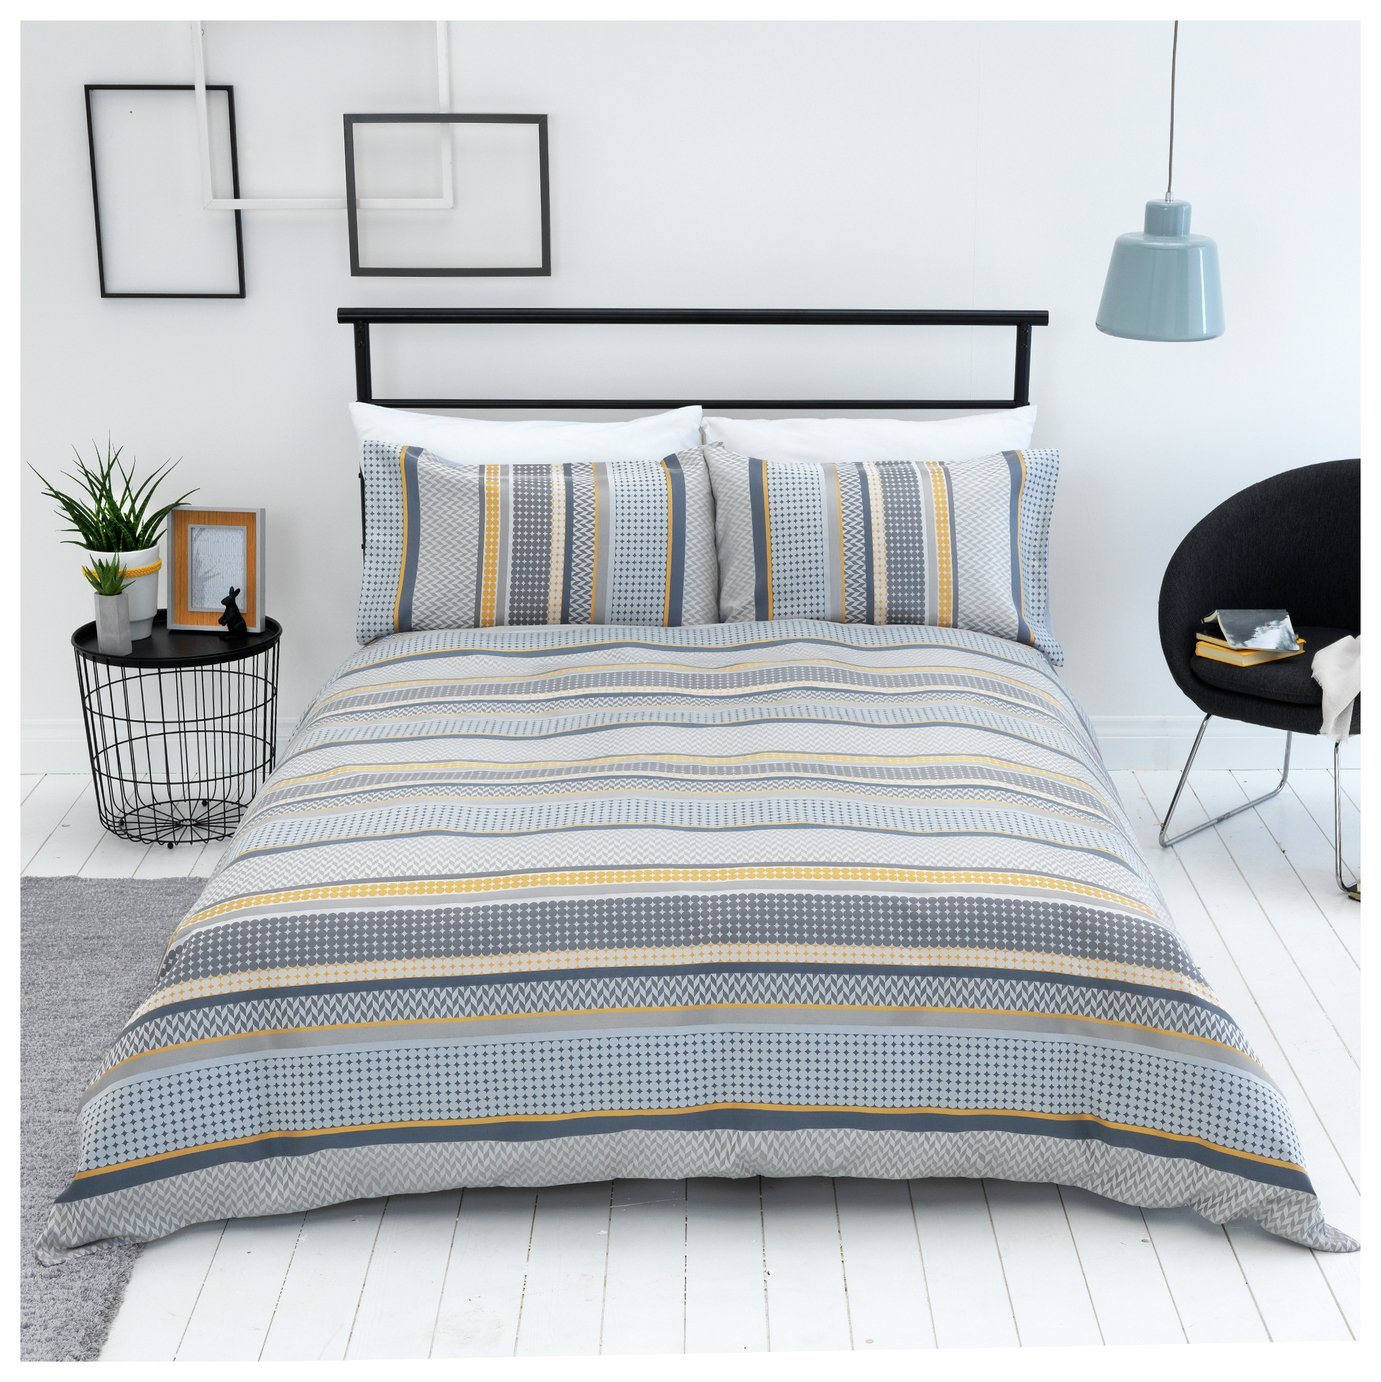 Sainsbury's Home Helsinki Jacquard Bedding Set - Double